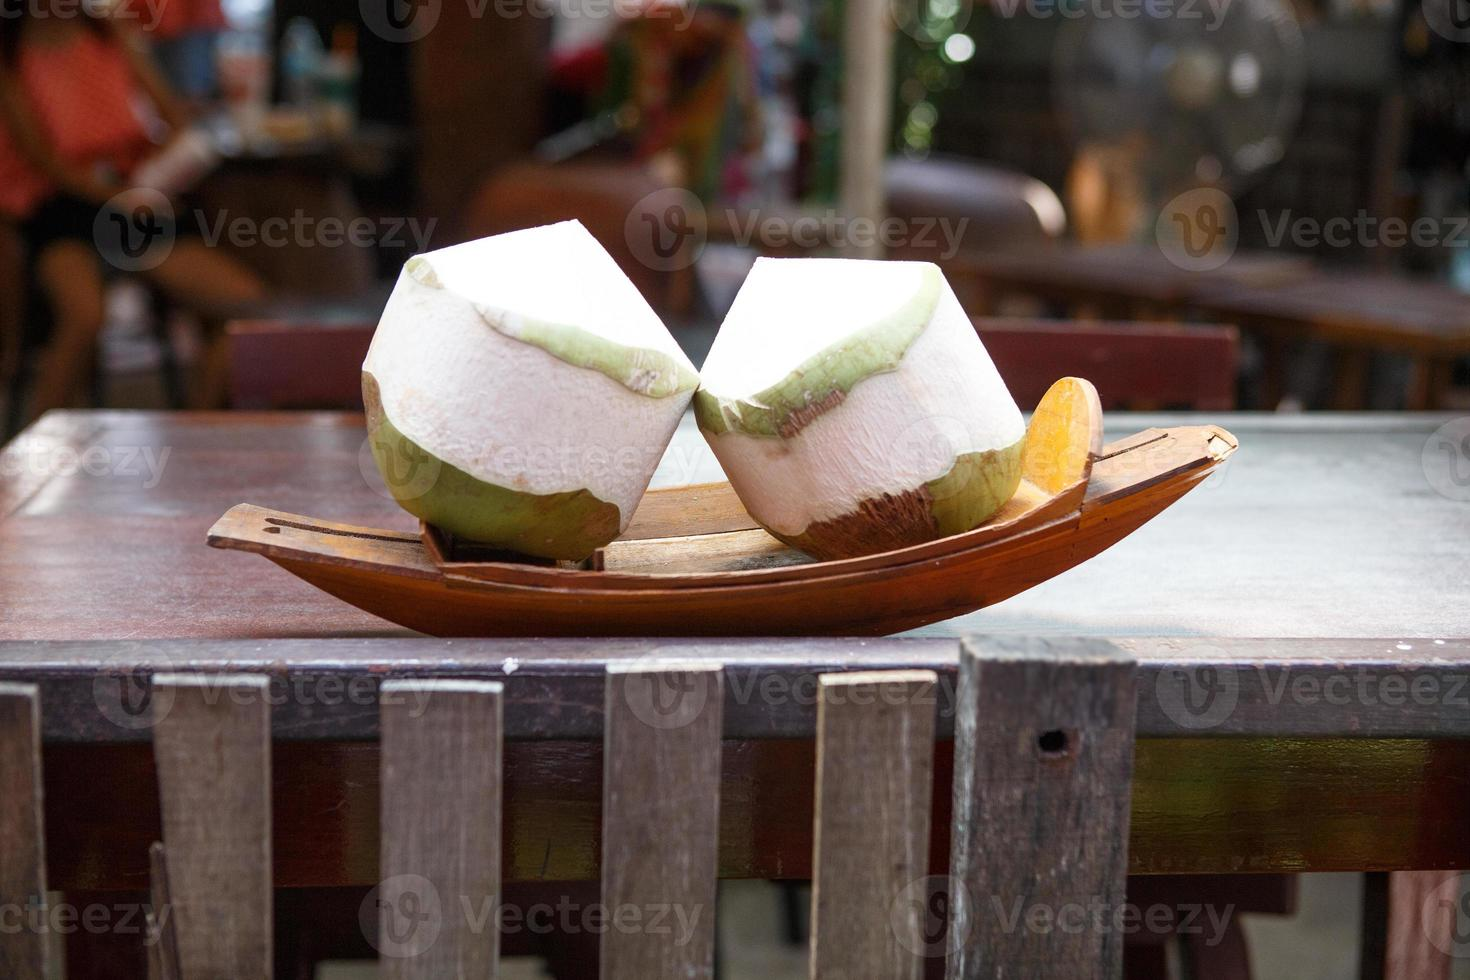 Chop off the tops and enjoy refreshing coconut water. photo